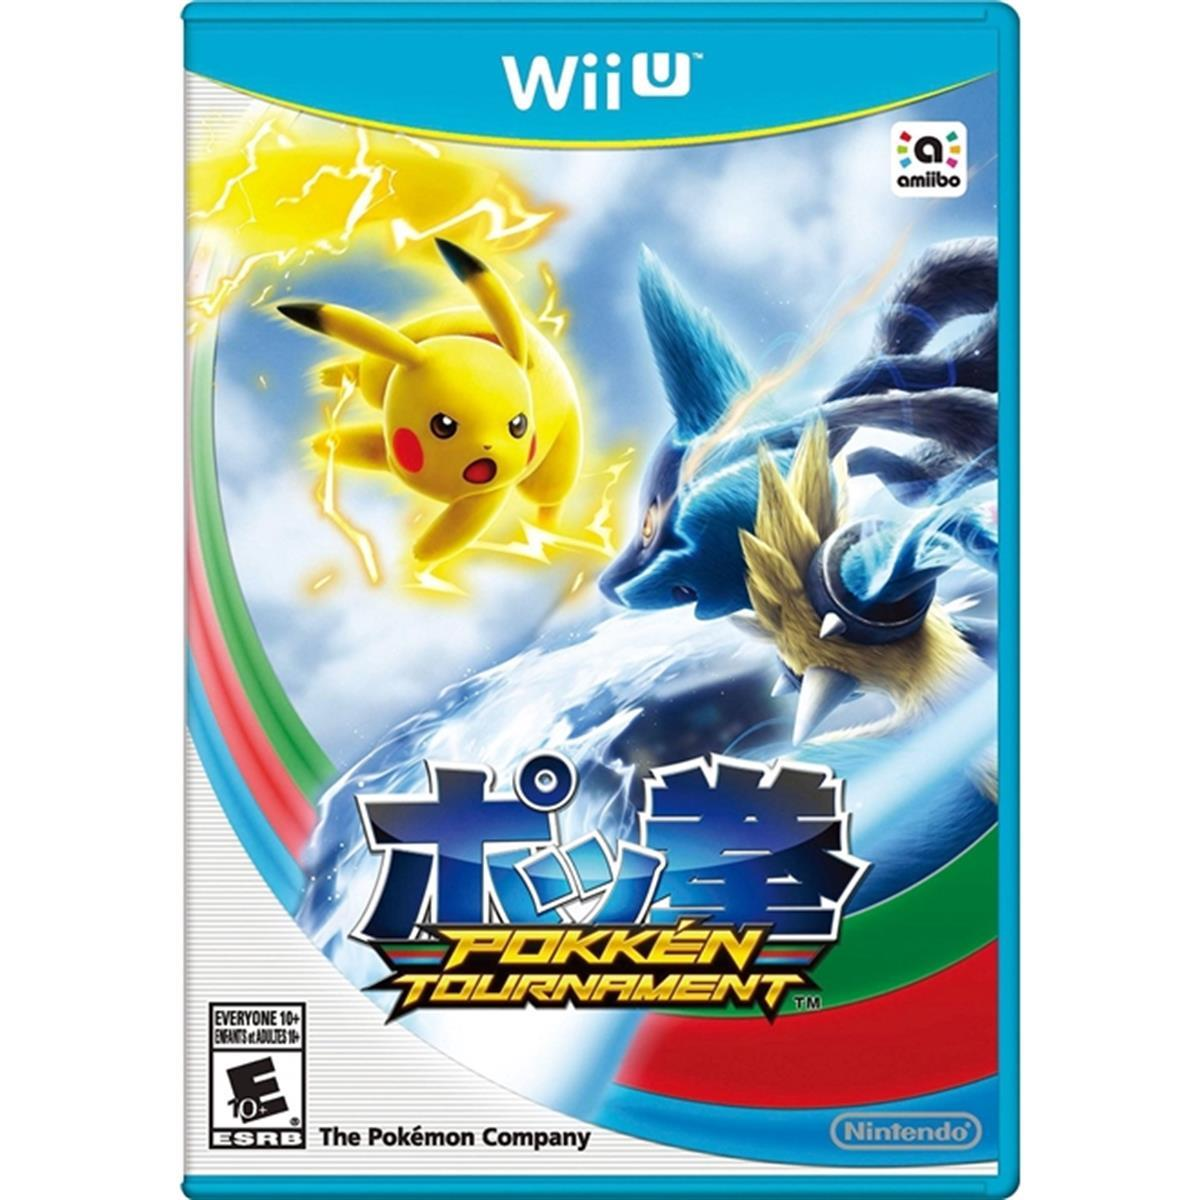 Pokken Tournament USADO - Nintendo Wii U